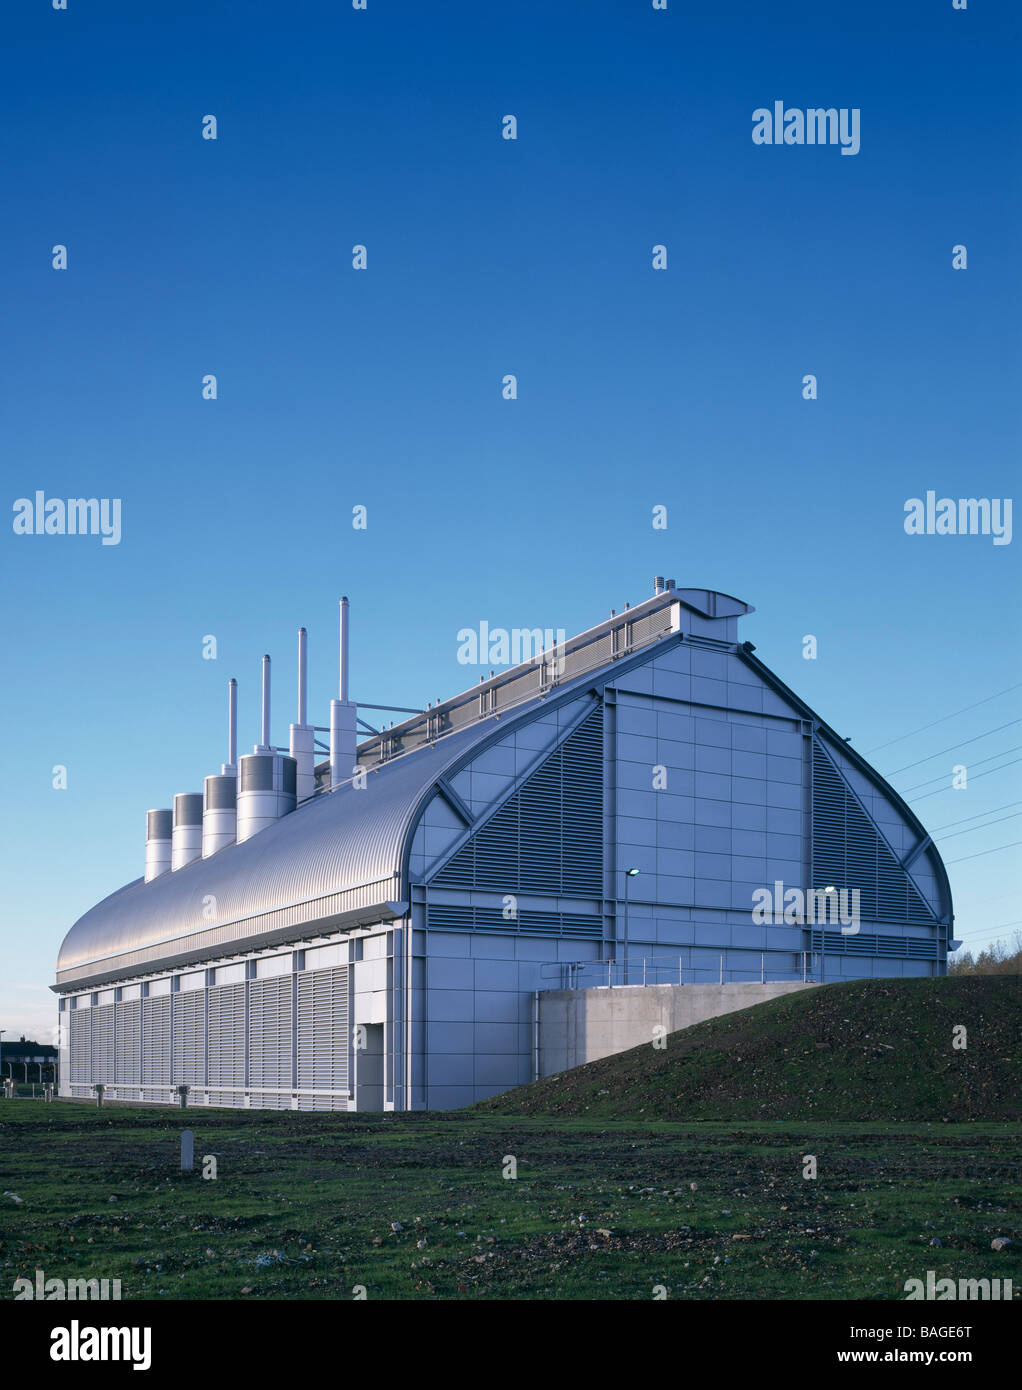 Abbey Mills Pumping Station, London, United Kingdom, 1997 - Stock Image